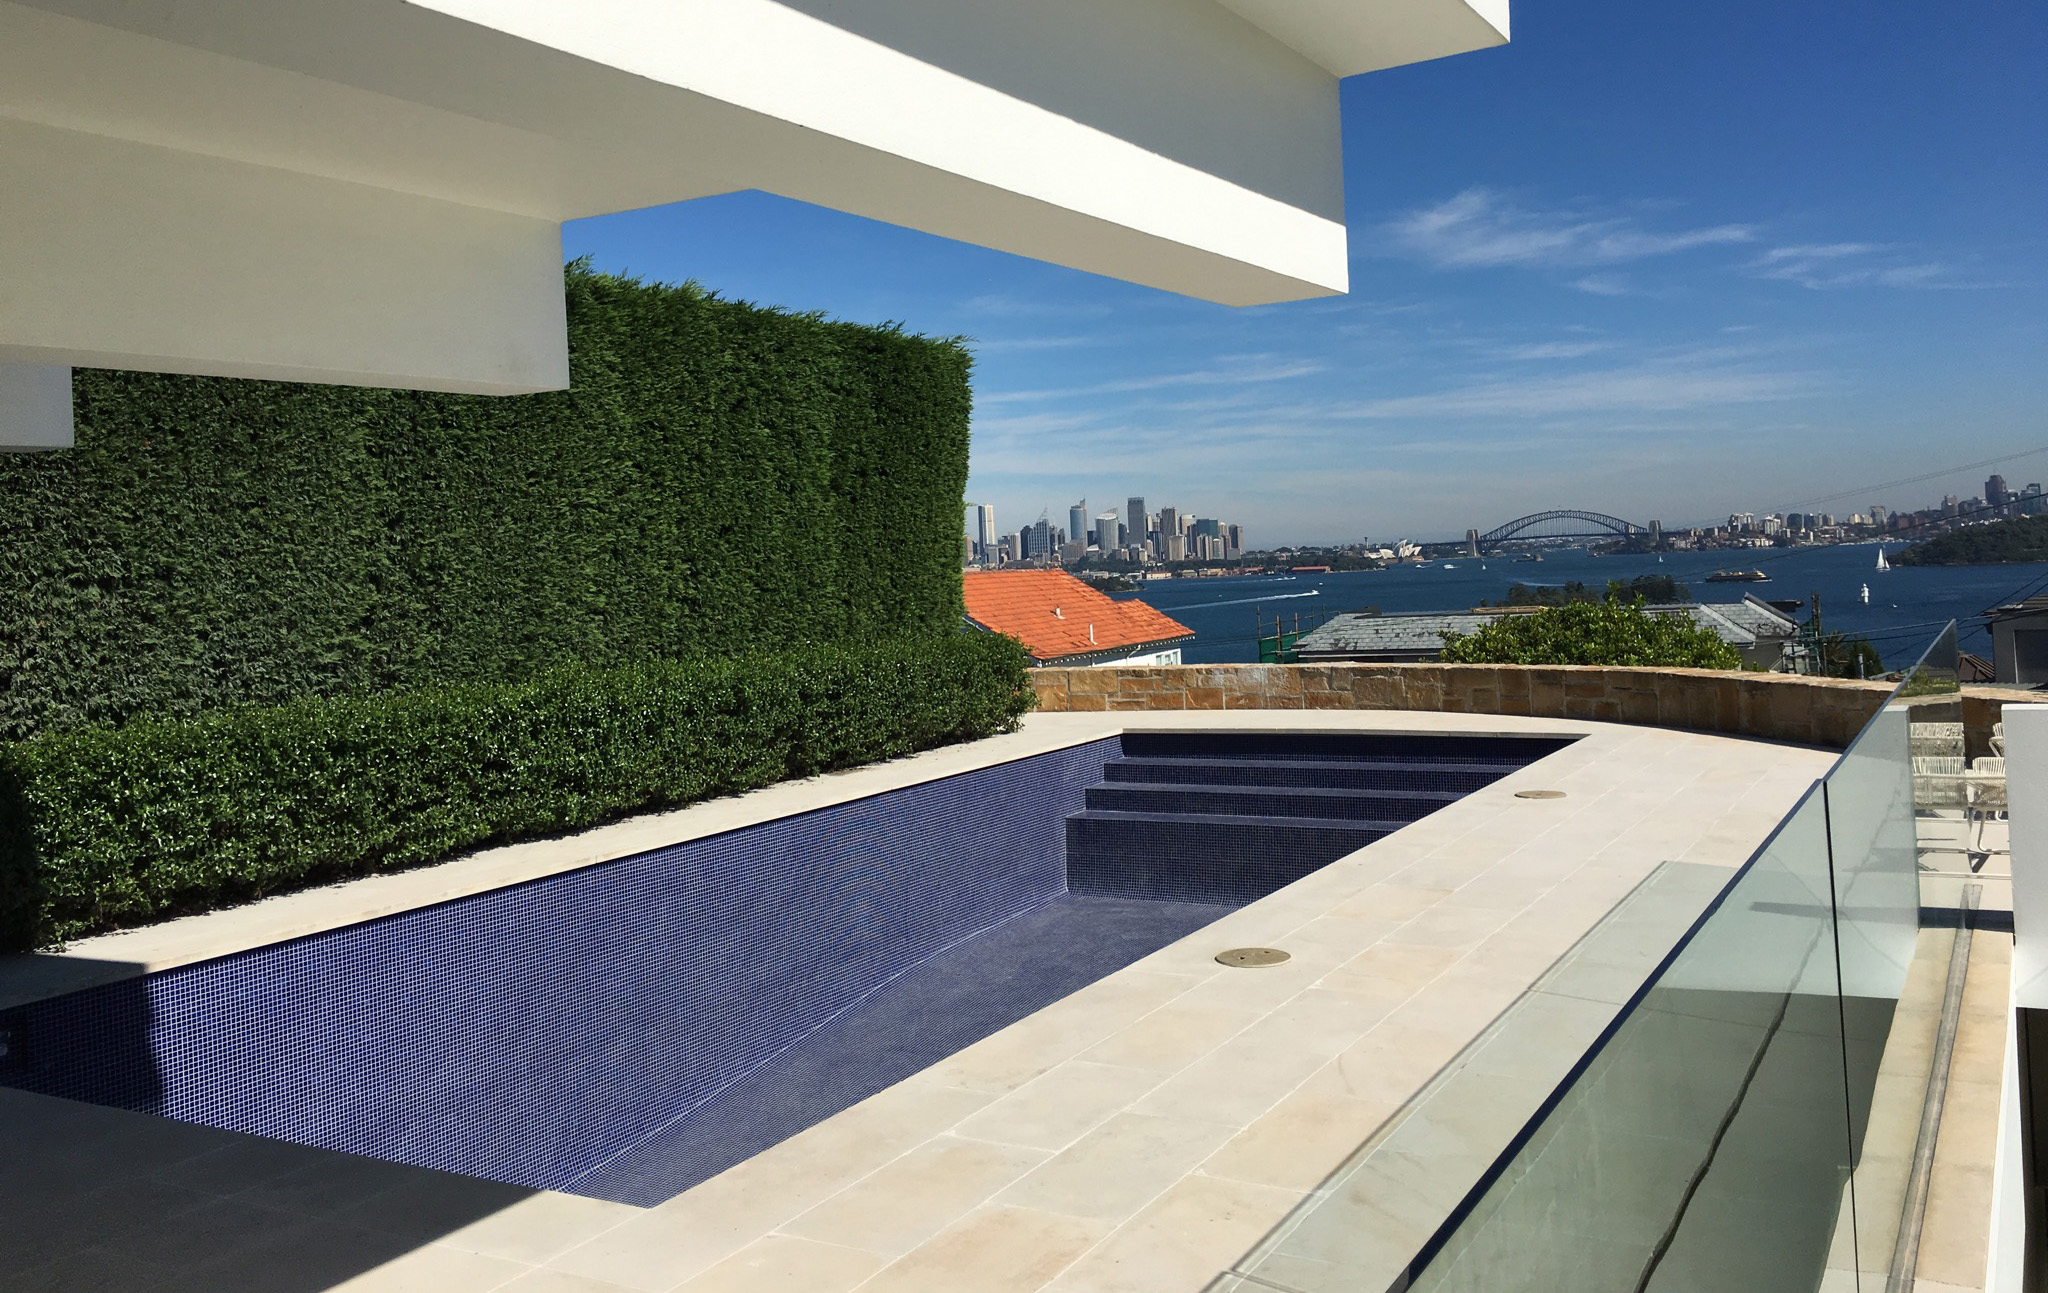 swimming pool tiling mosaic sydney renovations rendering copingFile7